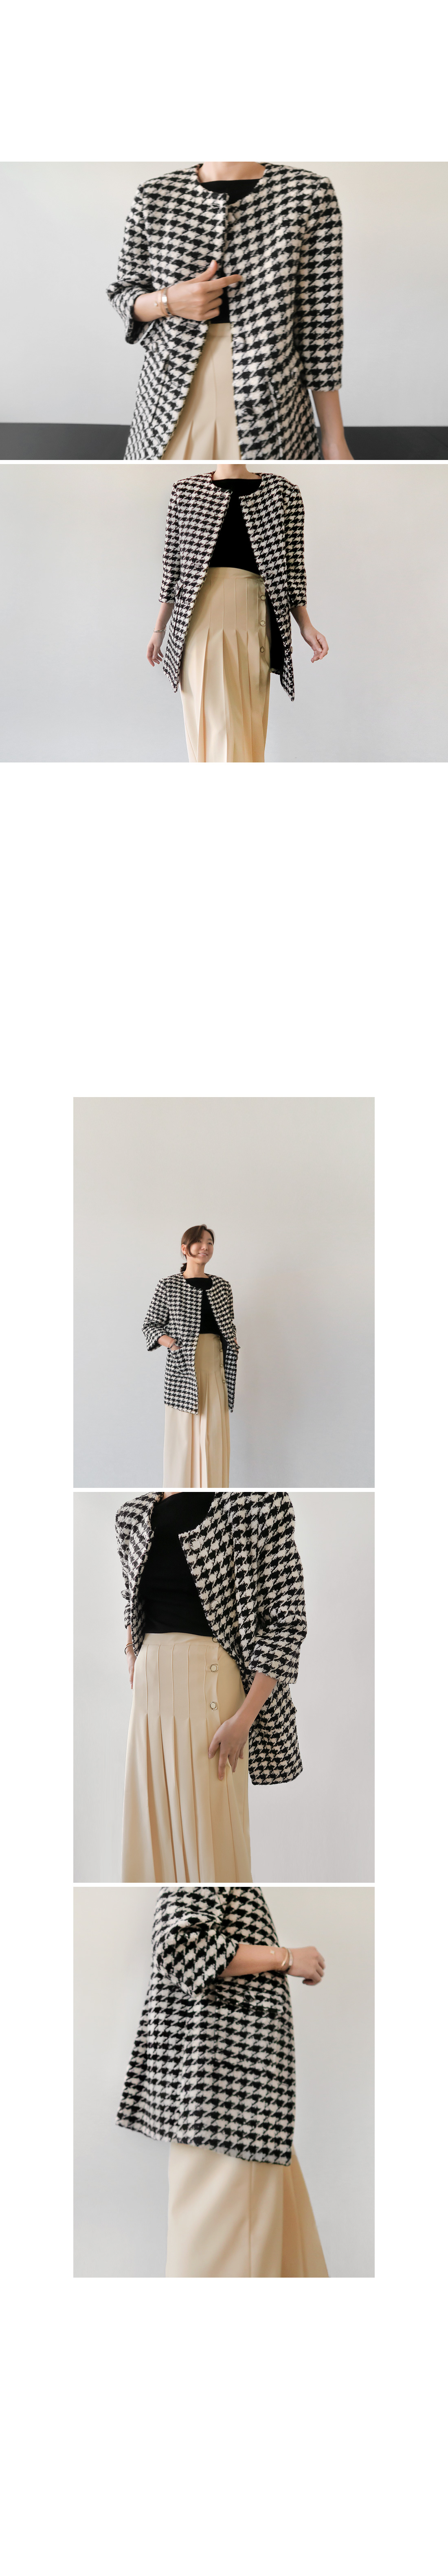 Houndstooth Pattern 3/4 Sleeve Coat|